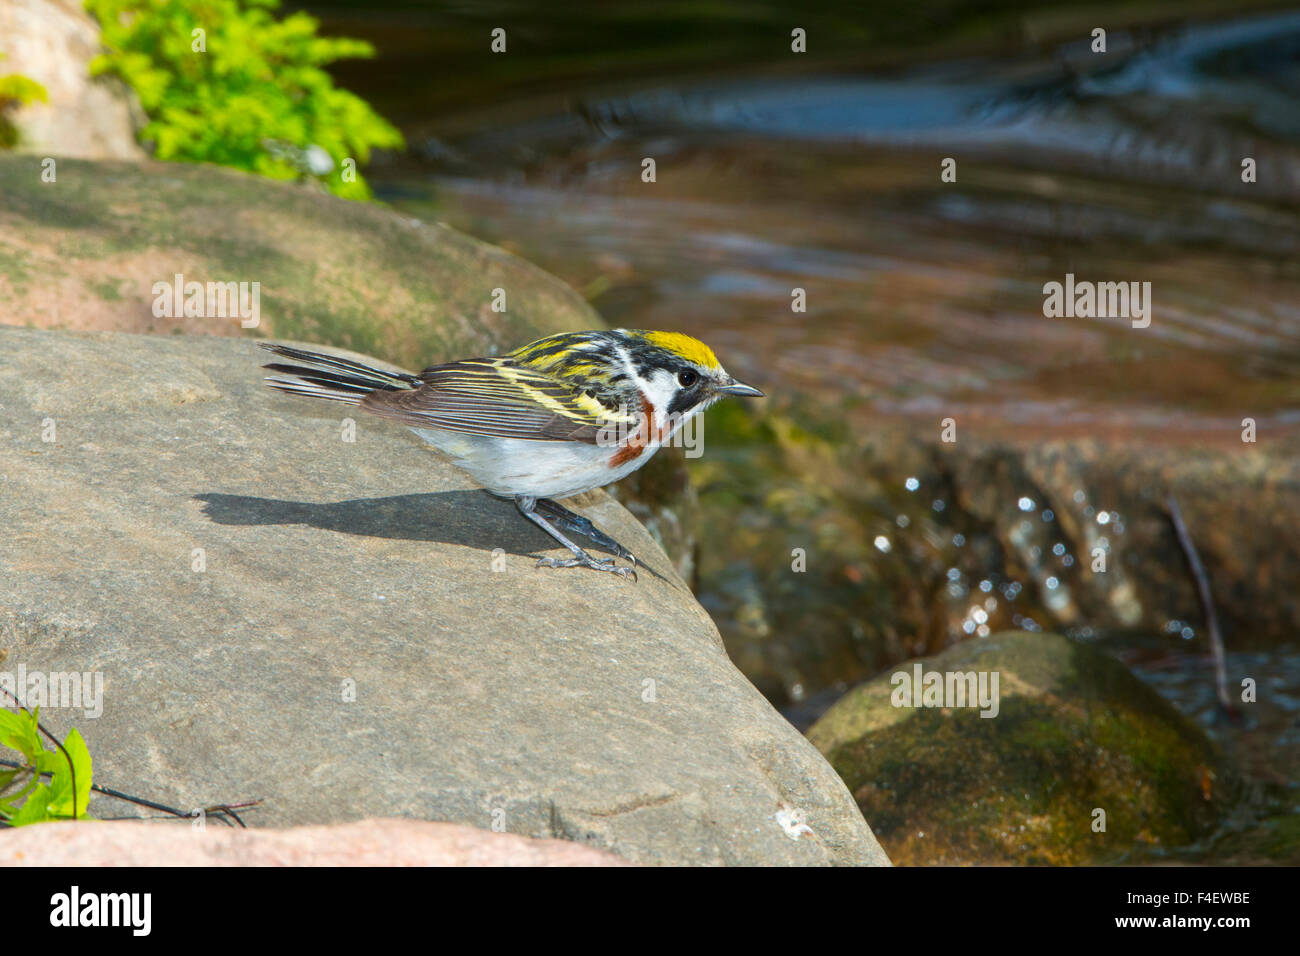 Minnesota, Mendota Heights, Chestnut-sided Warbler perched on Rock Stock Photo